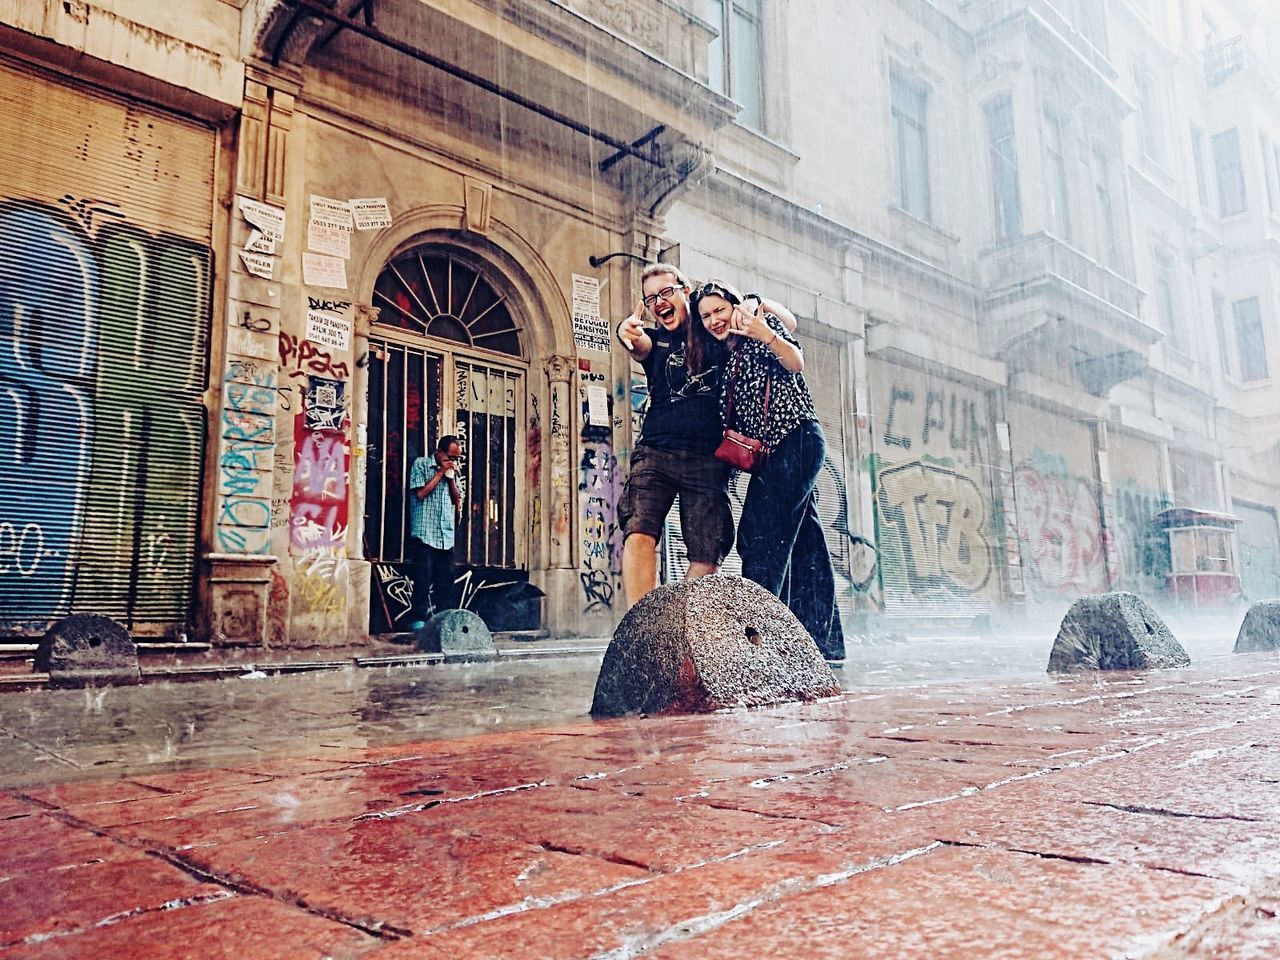 building exterior, architecture, real people, men, street, city, built structure, lifestyles, two people, adult, women, day, young adult, winter, people, clothing, young men, building, leisure activity, warm clothing, outdoors, snowing, rain